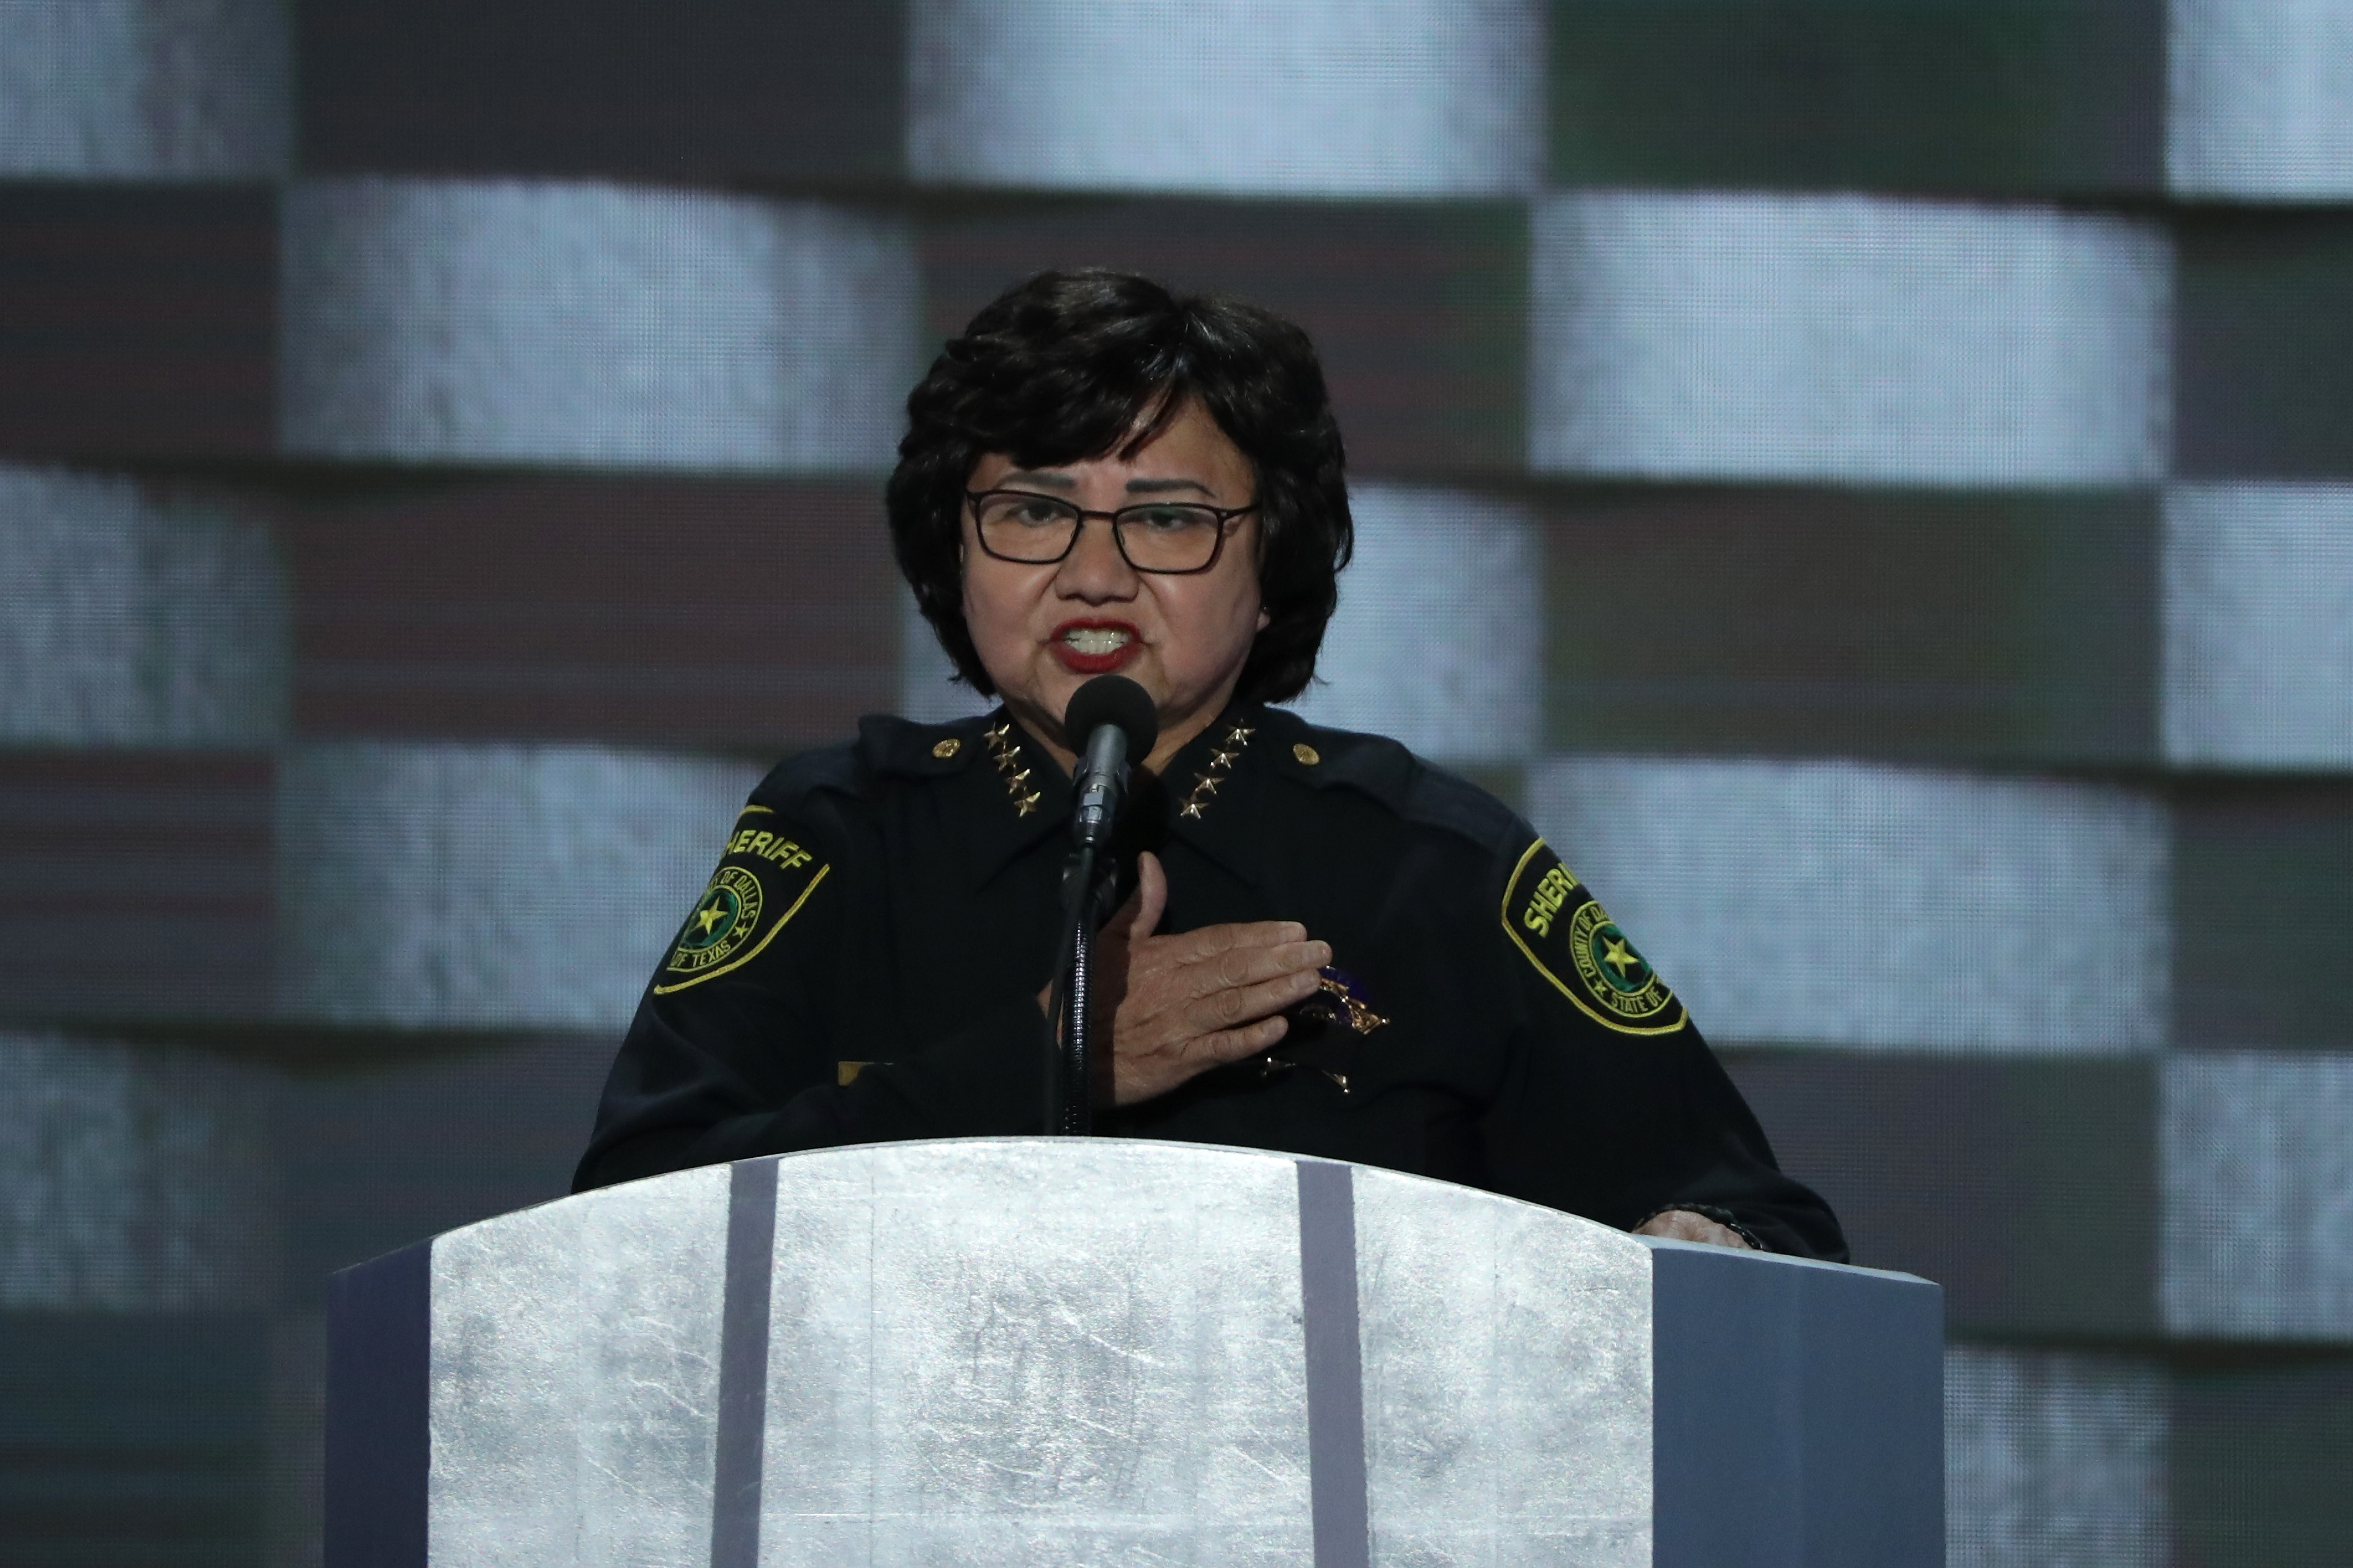 Then-Dallas Sheriff Lupe Valdez delivers remarks on the fourth day of the Democratic National Convention at the Wells Fargo Center, July 28, 2016 in Philadelphia.